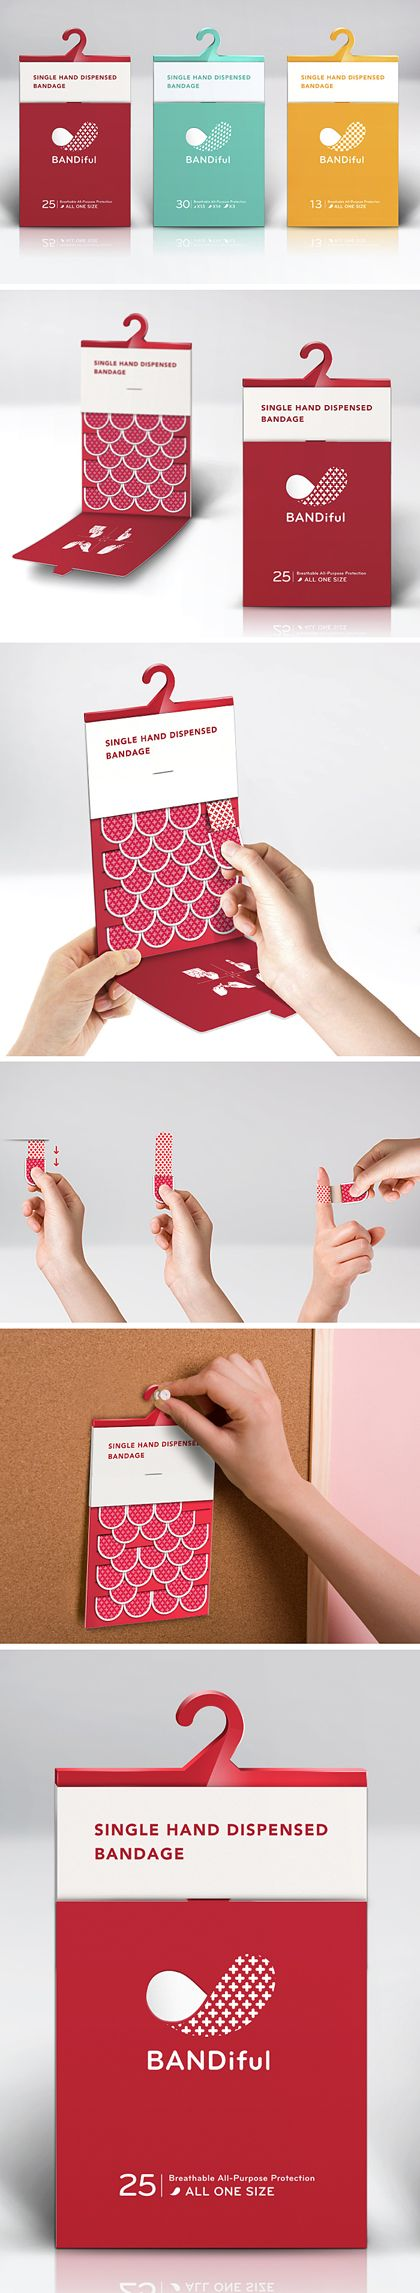 Bandiful is so innovative and one of the top 10 #2013 #PPOTD #packaging pins #toppins PD